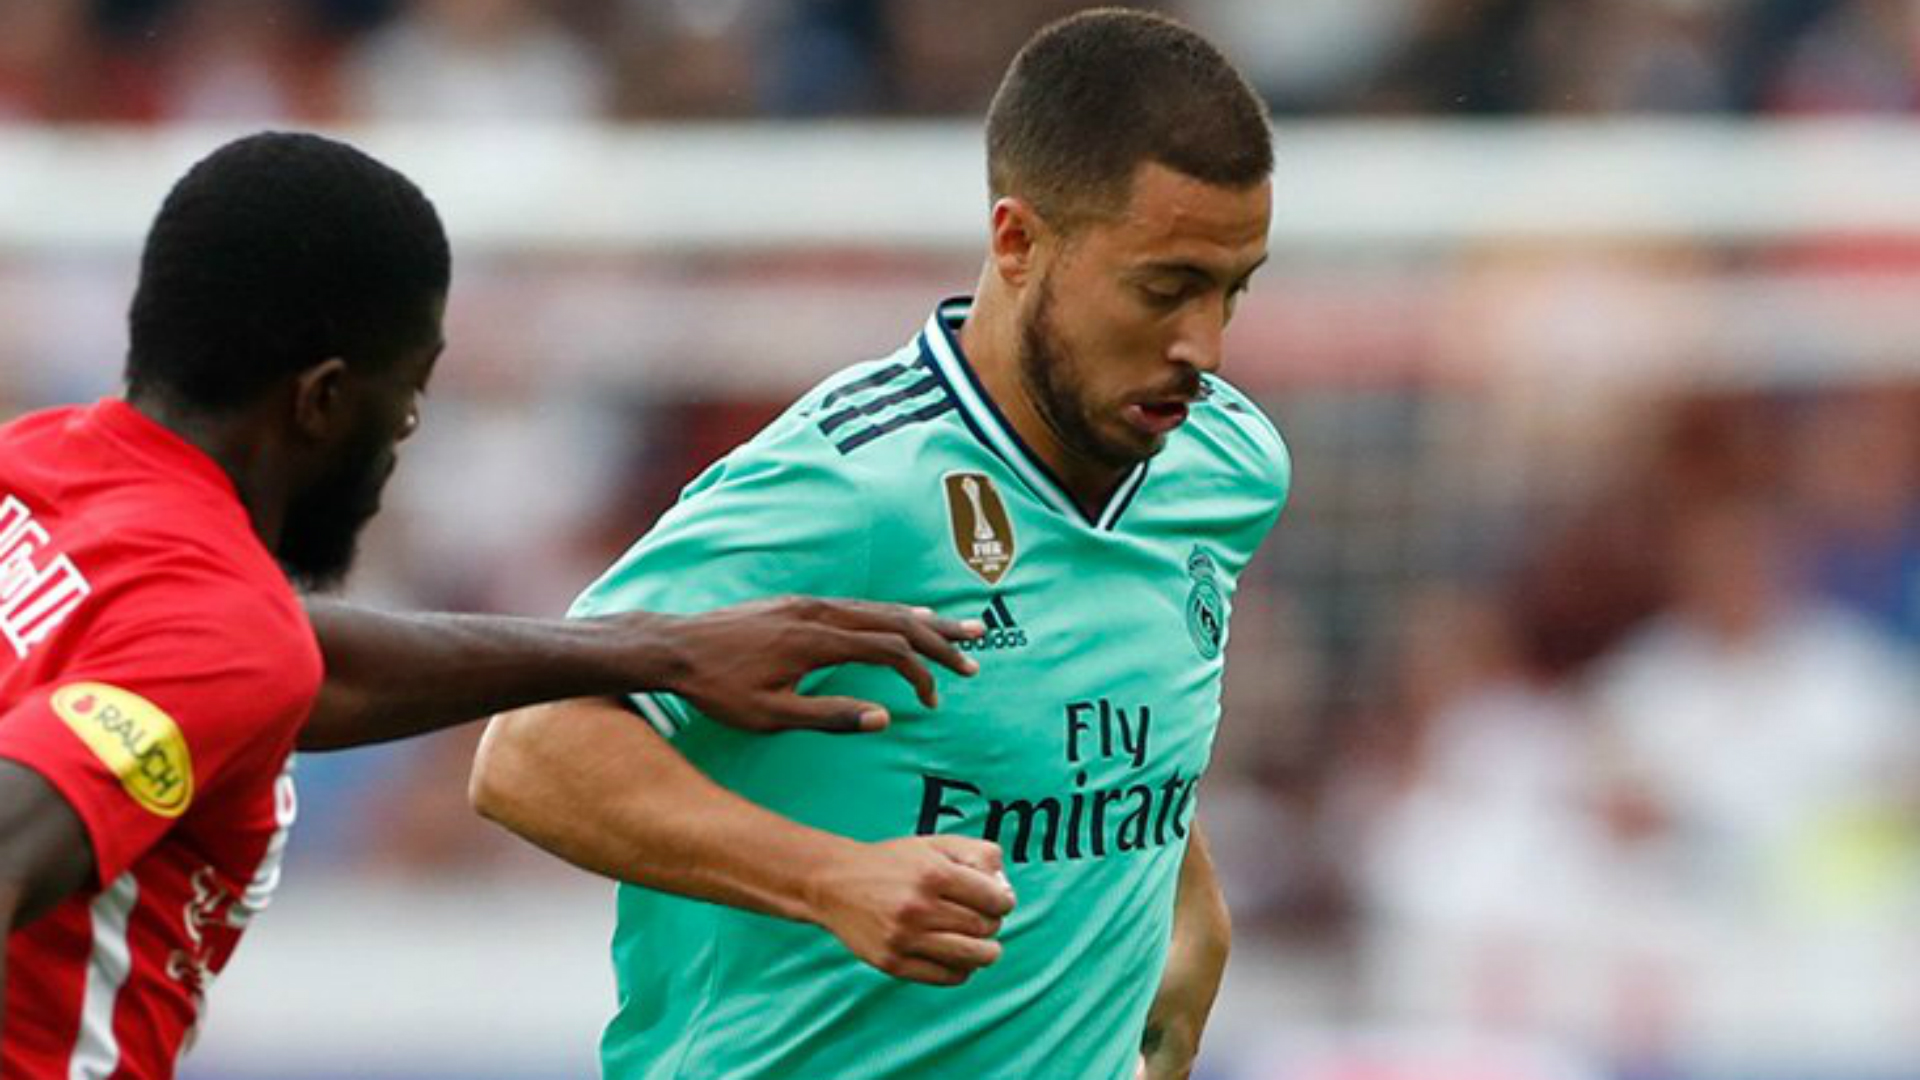 Hazard 'very pleased' after scoring first Real Madrid goal